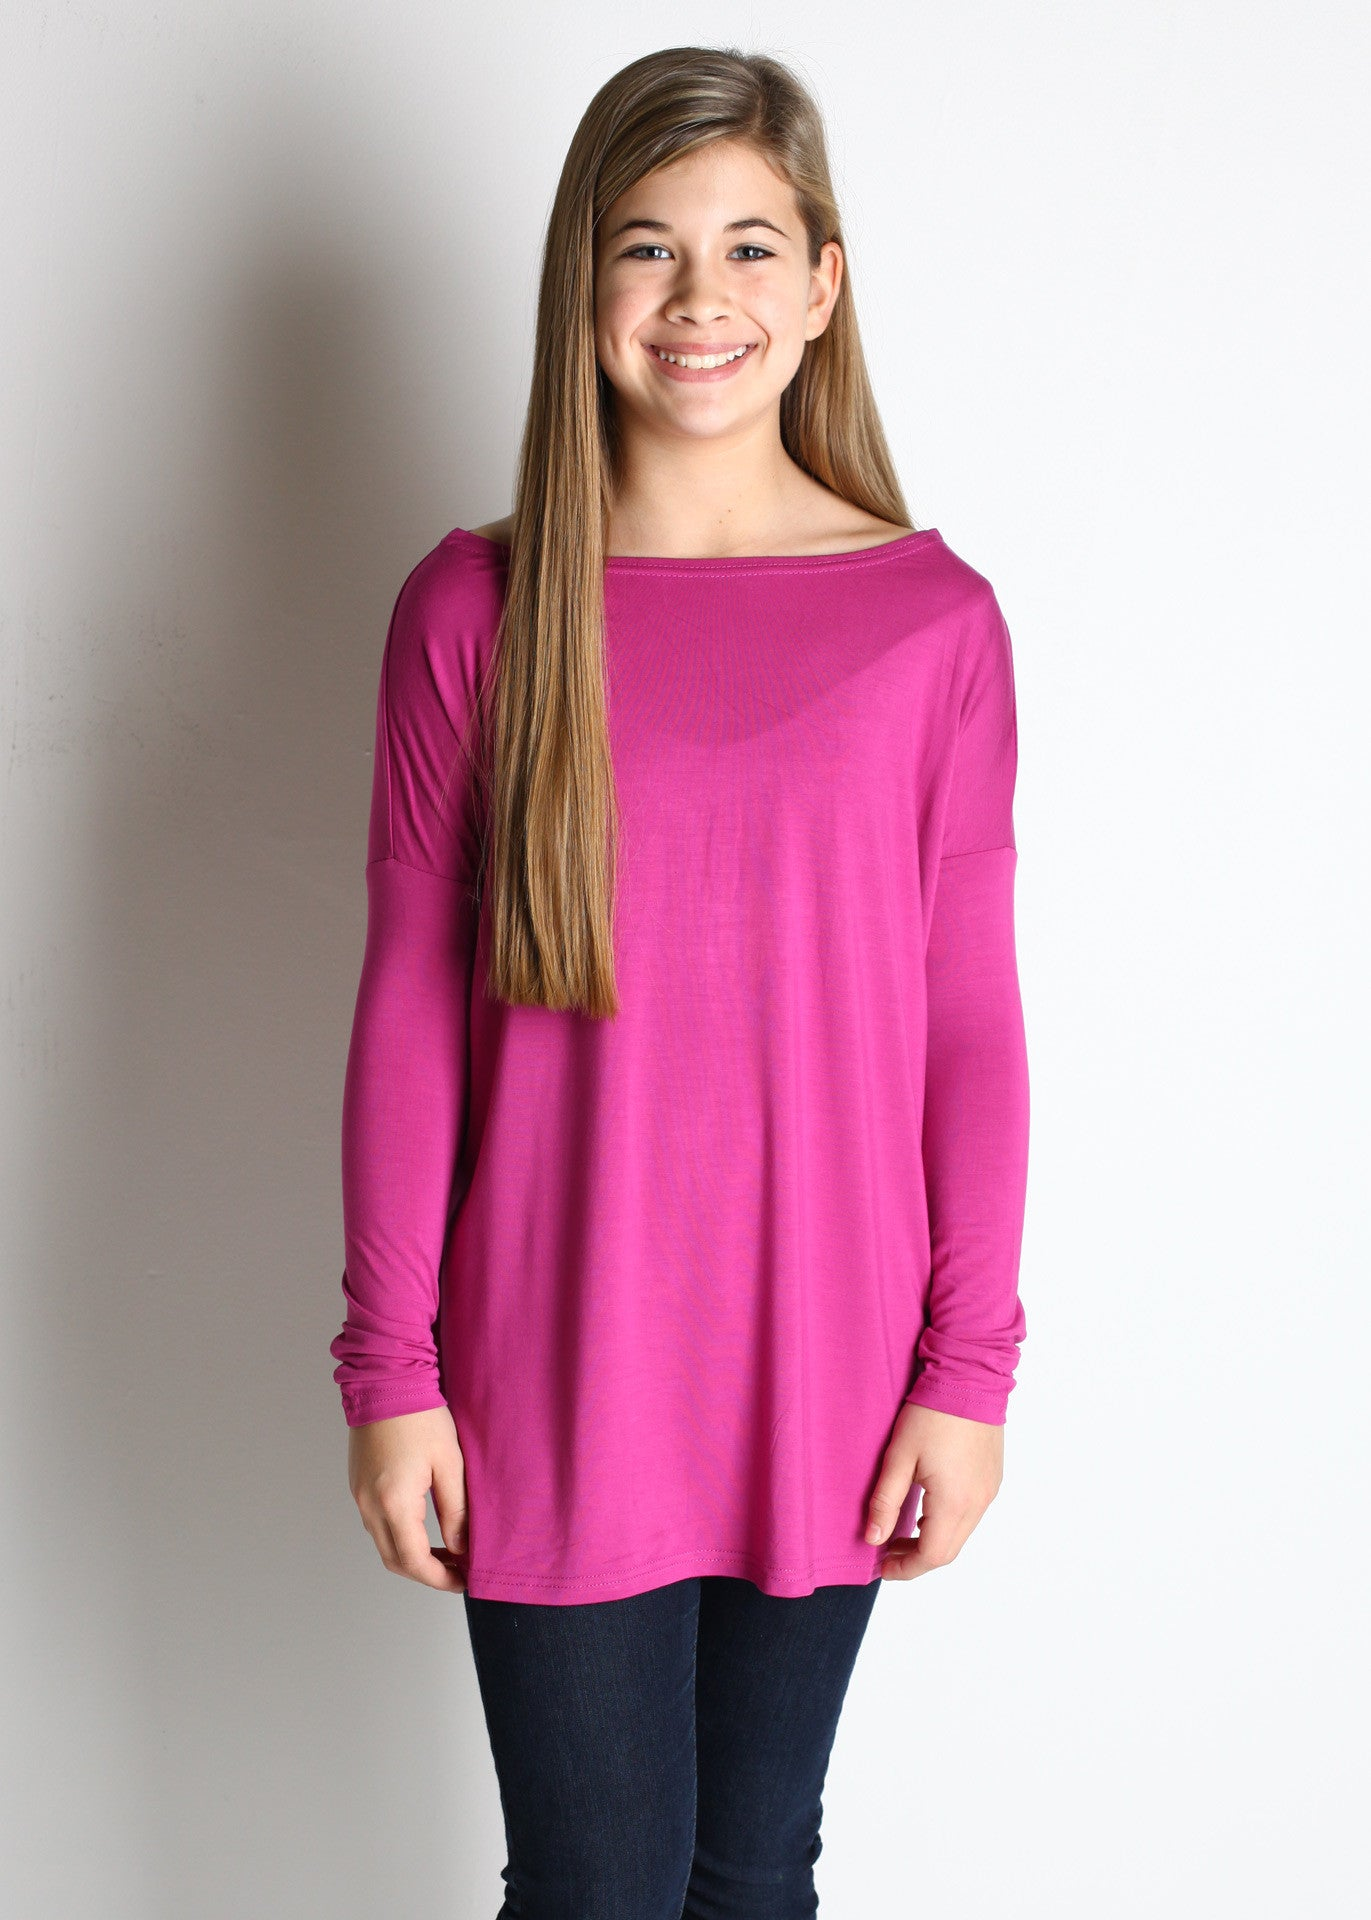 Original Kids Long Sleeve Top - Piko Clearance Center - 16